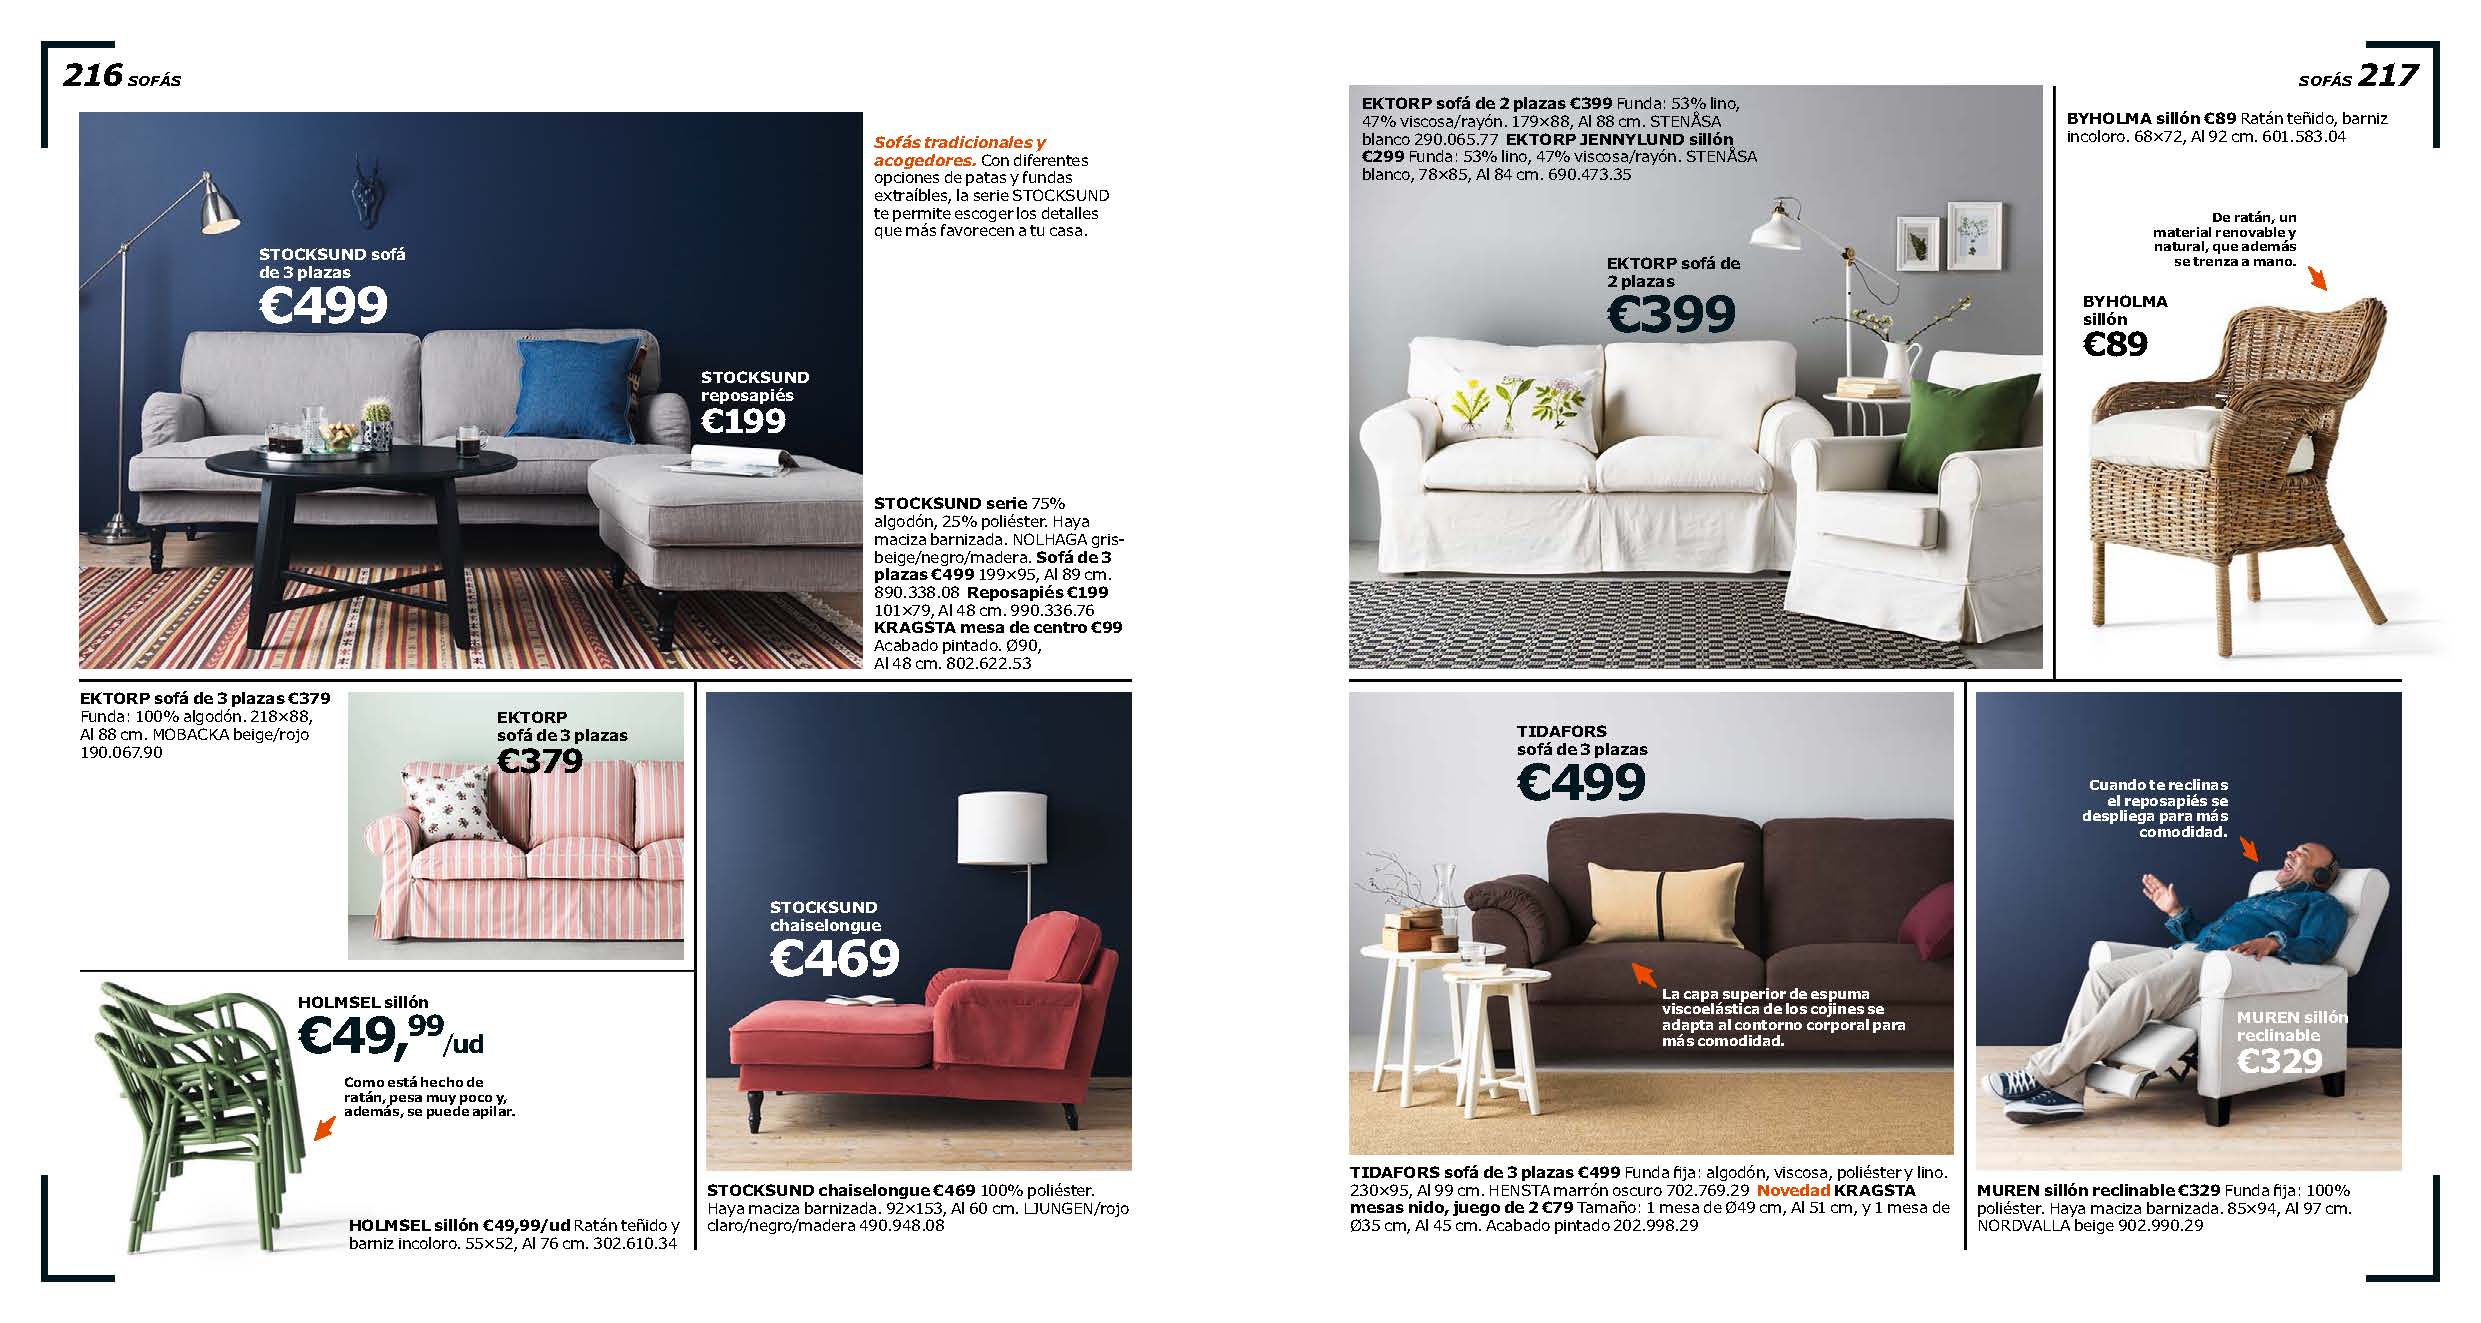 catalogo decorar con ikea 2016 es_Page_109